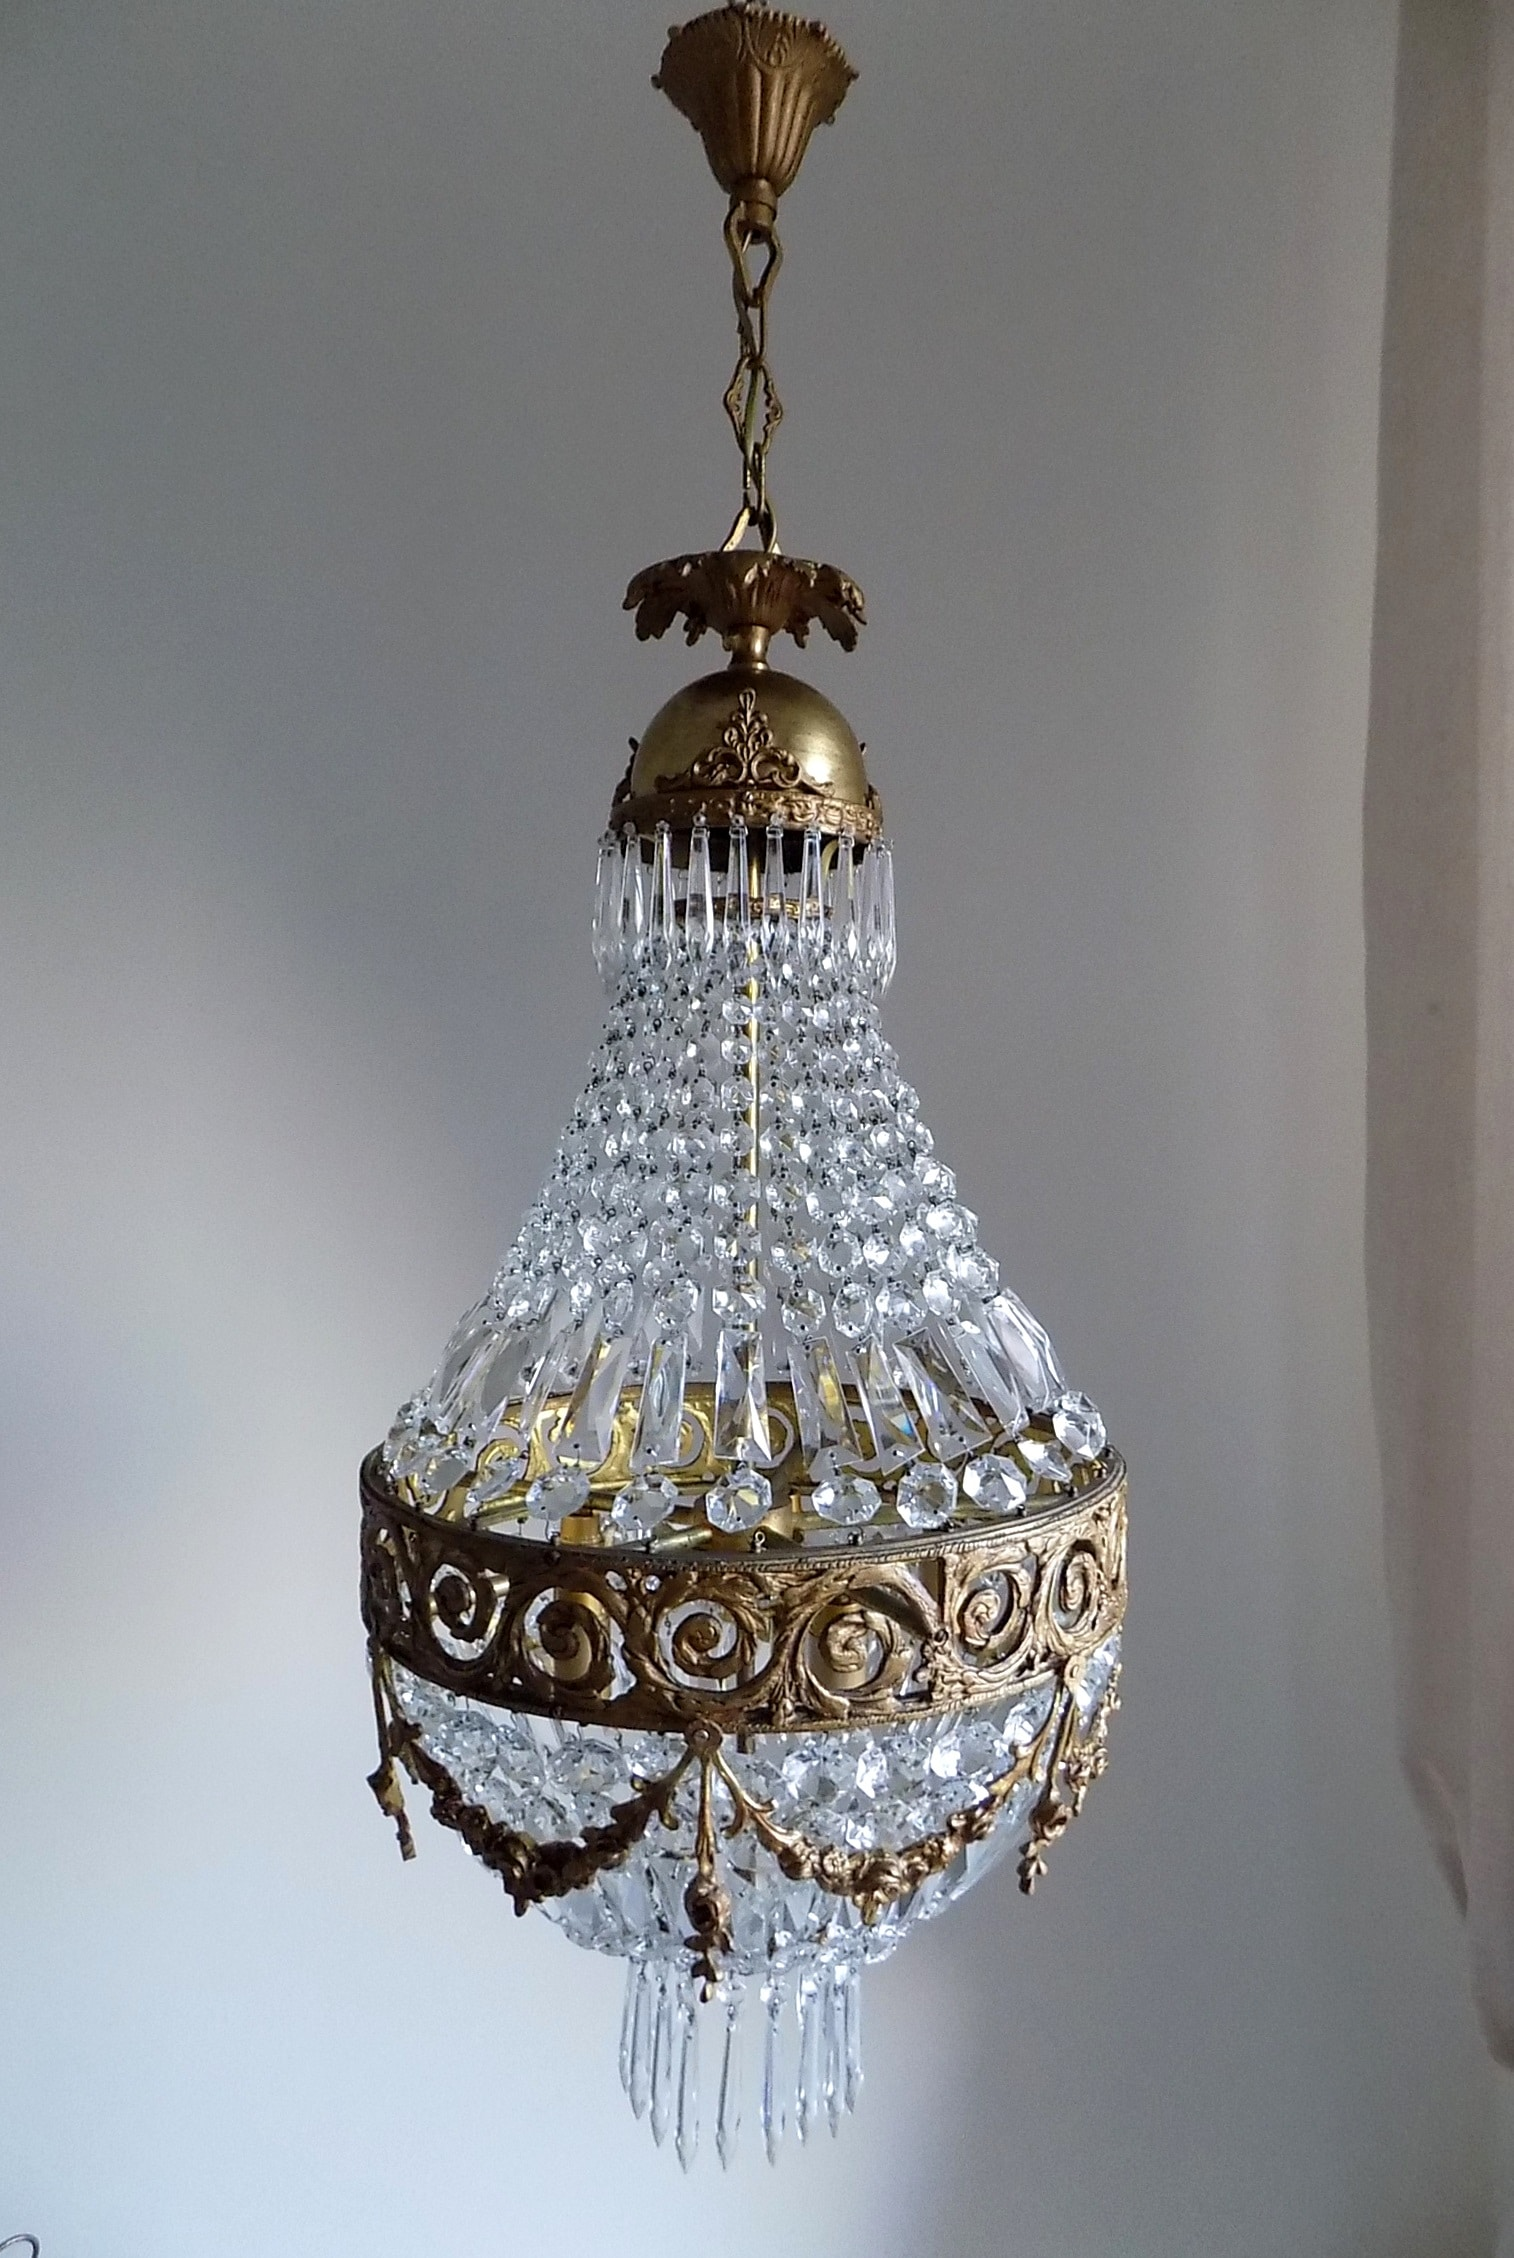 lightbox - Antique Bronze Empire Style Chandelier - Lorella Dia